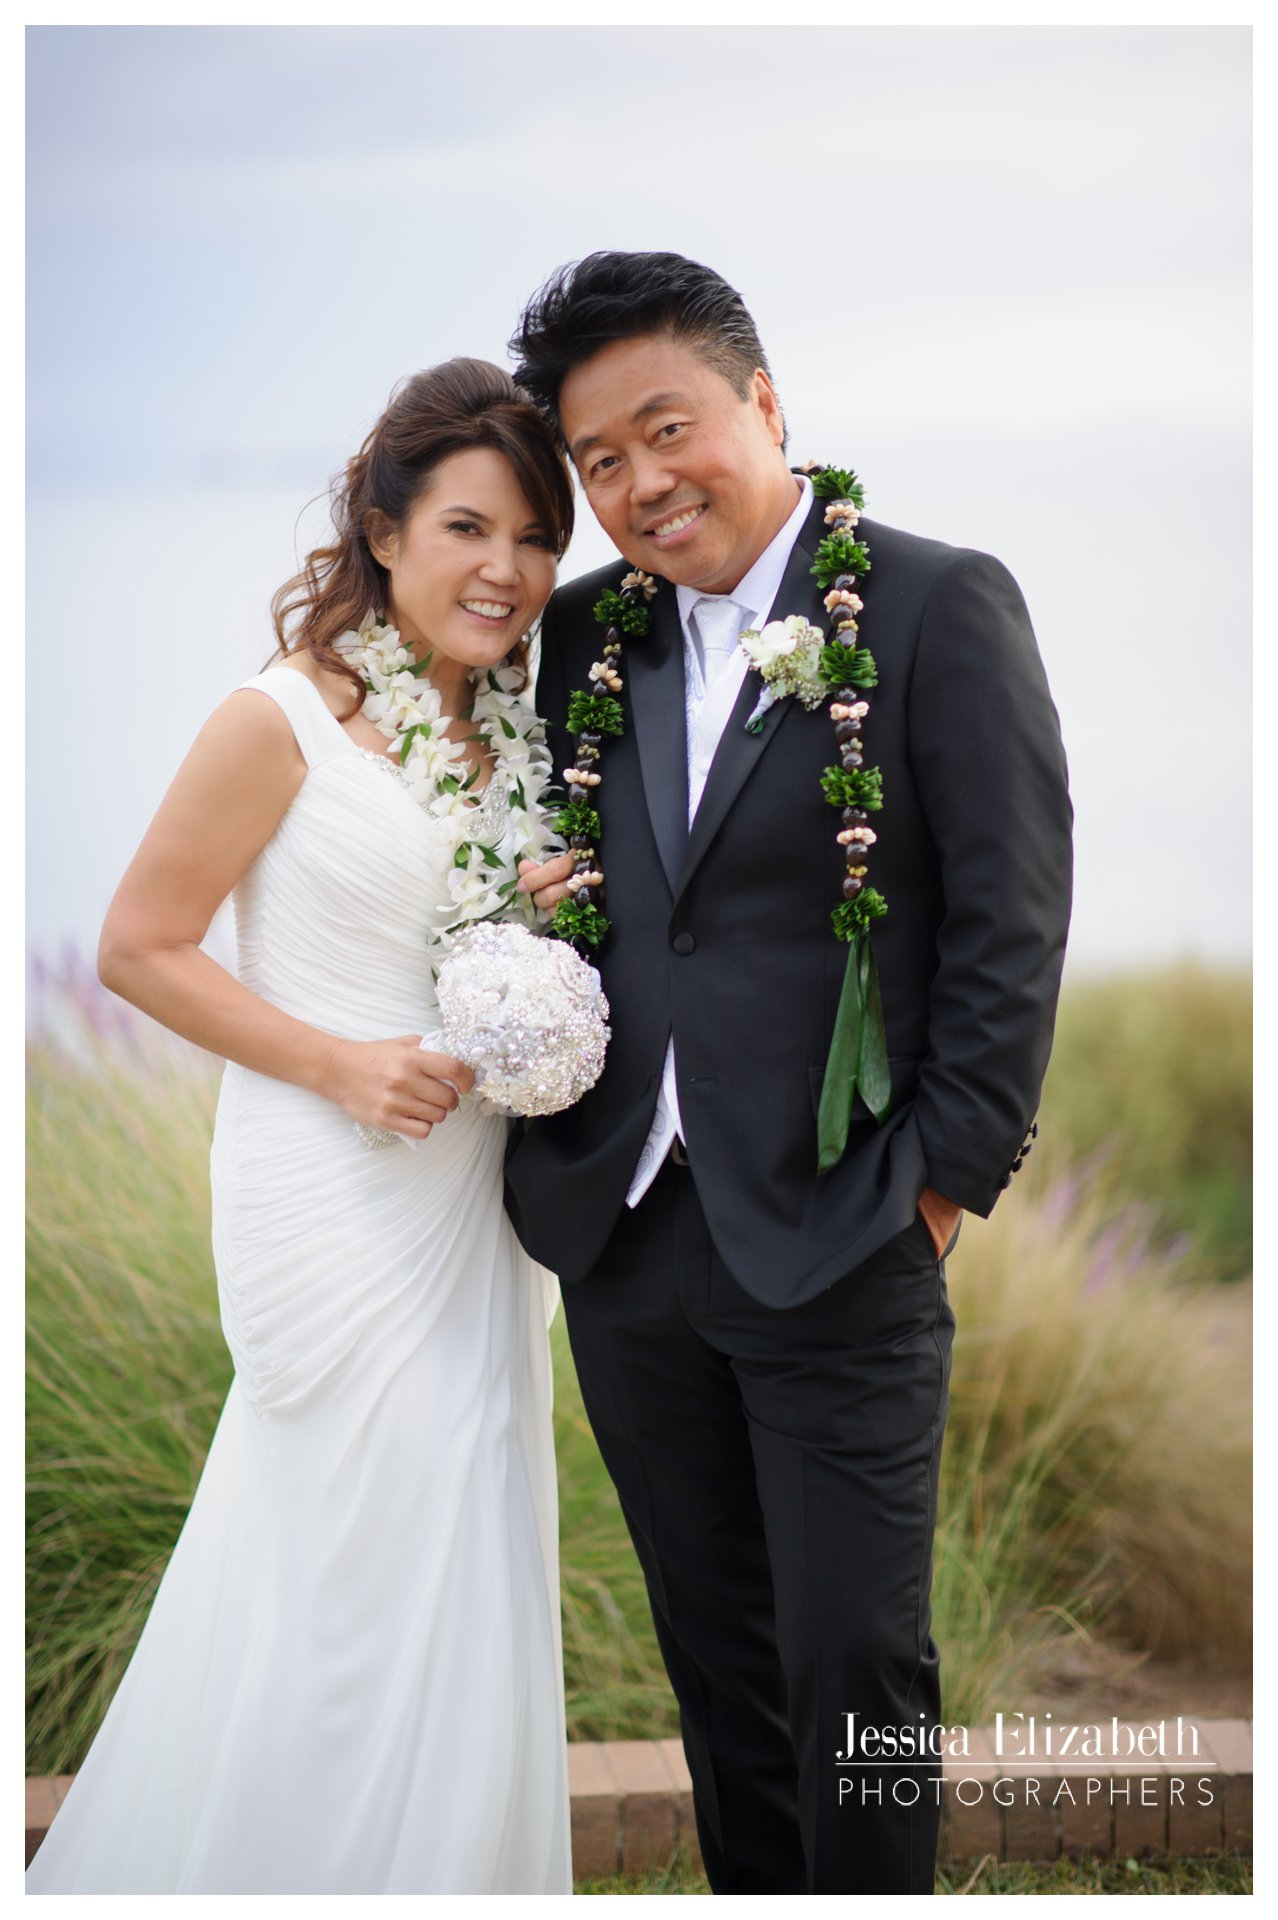 28-Terranea-Palos-Verdes-Wedding-Photography-by-Jessica-Elizabeth-w.jpg